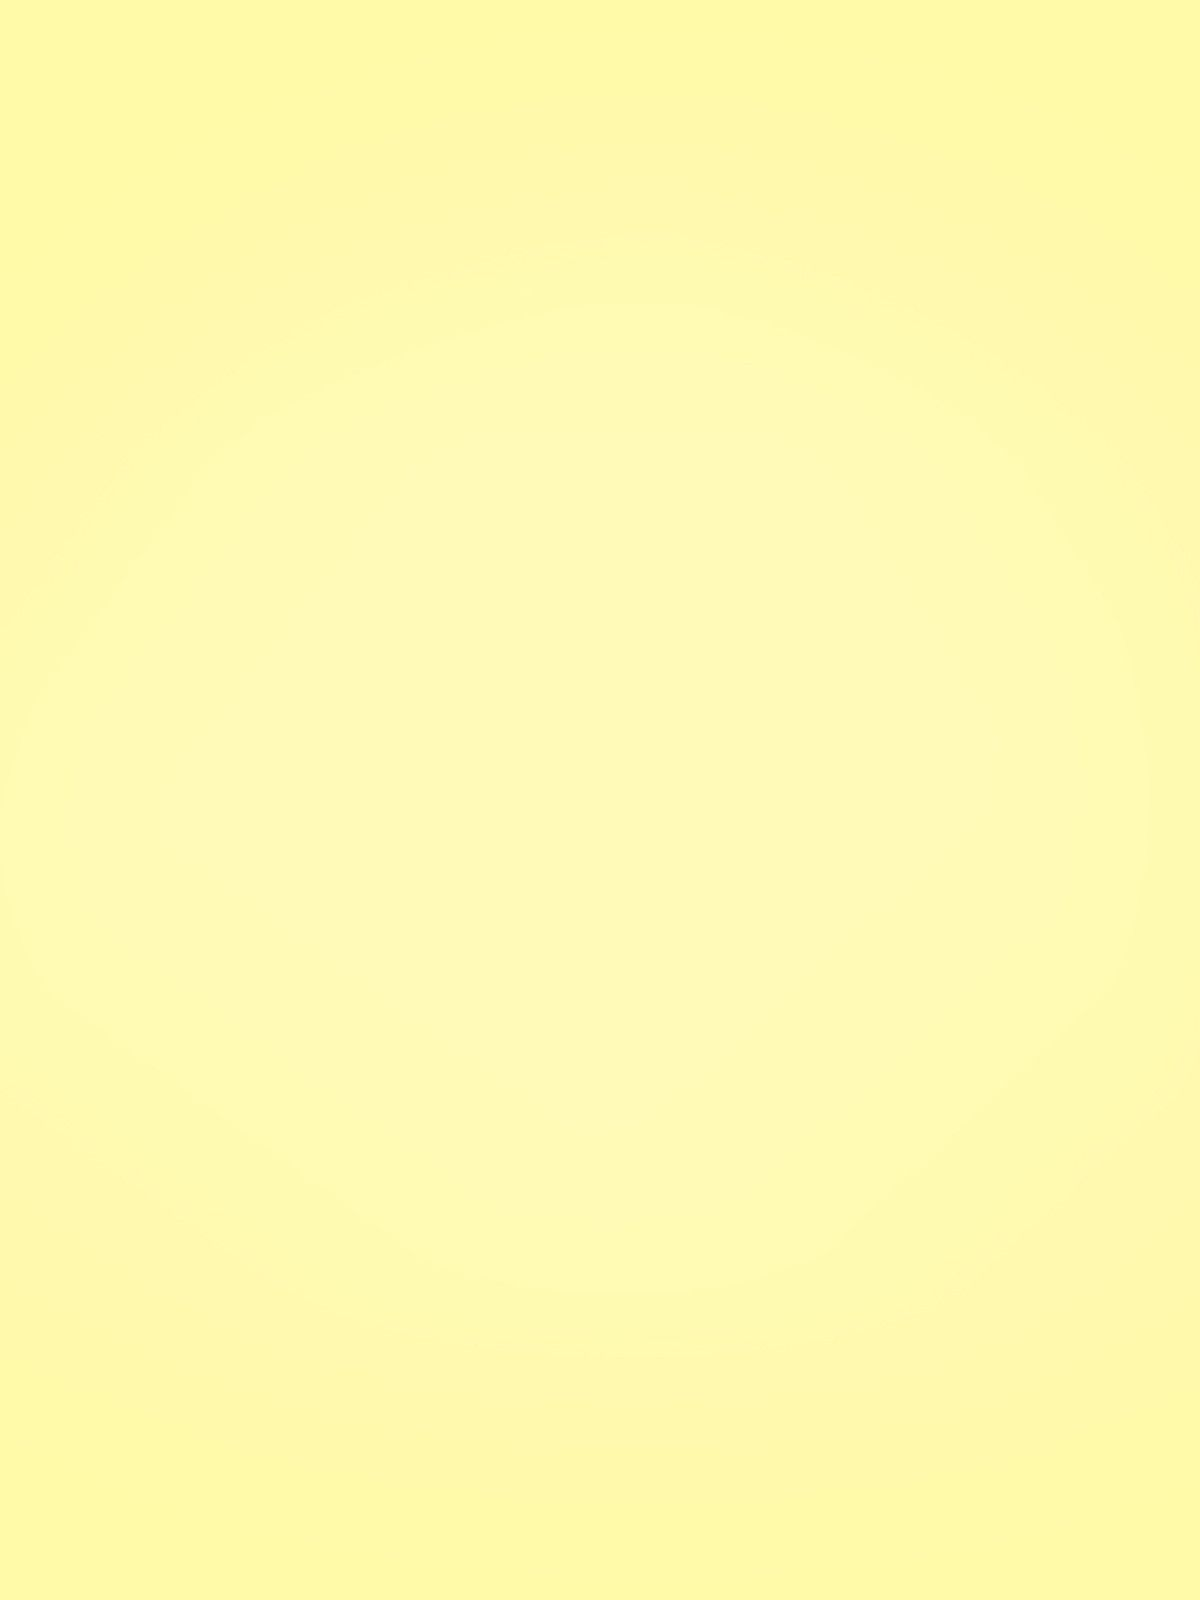 Lemon Yellow Solid Printed Photo Background 9103 With Images